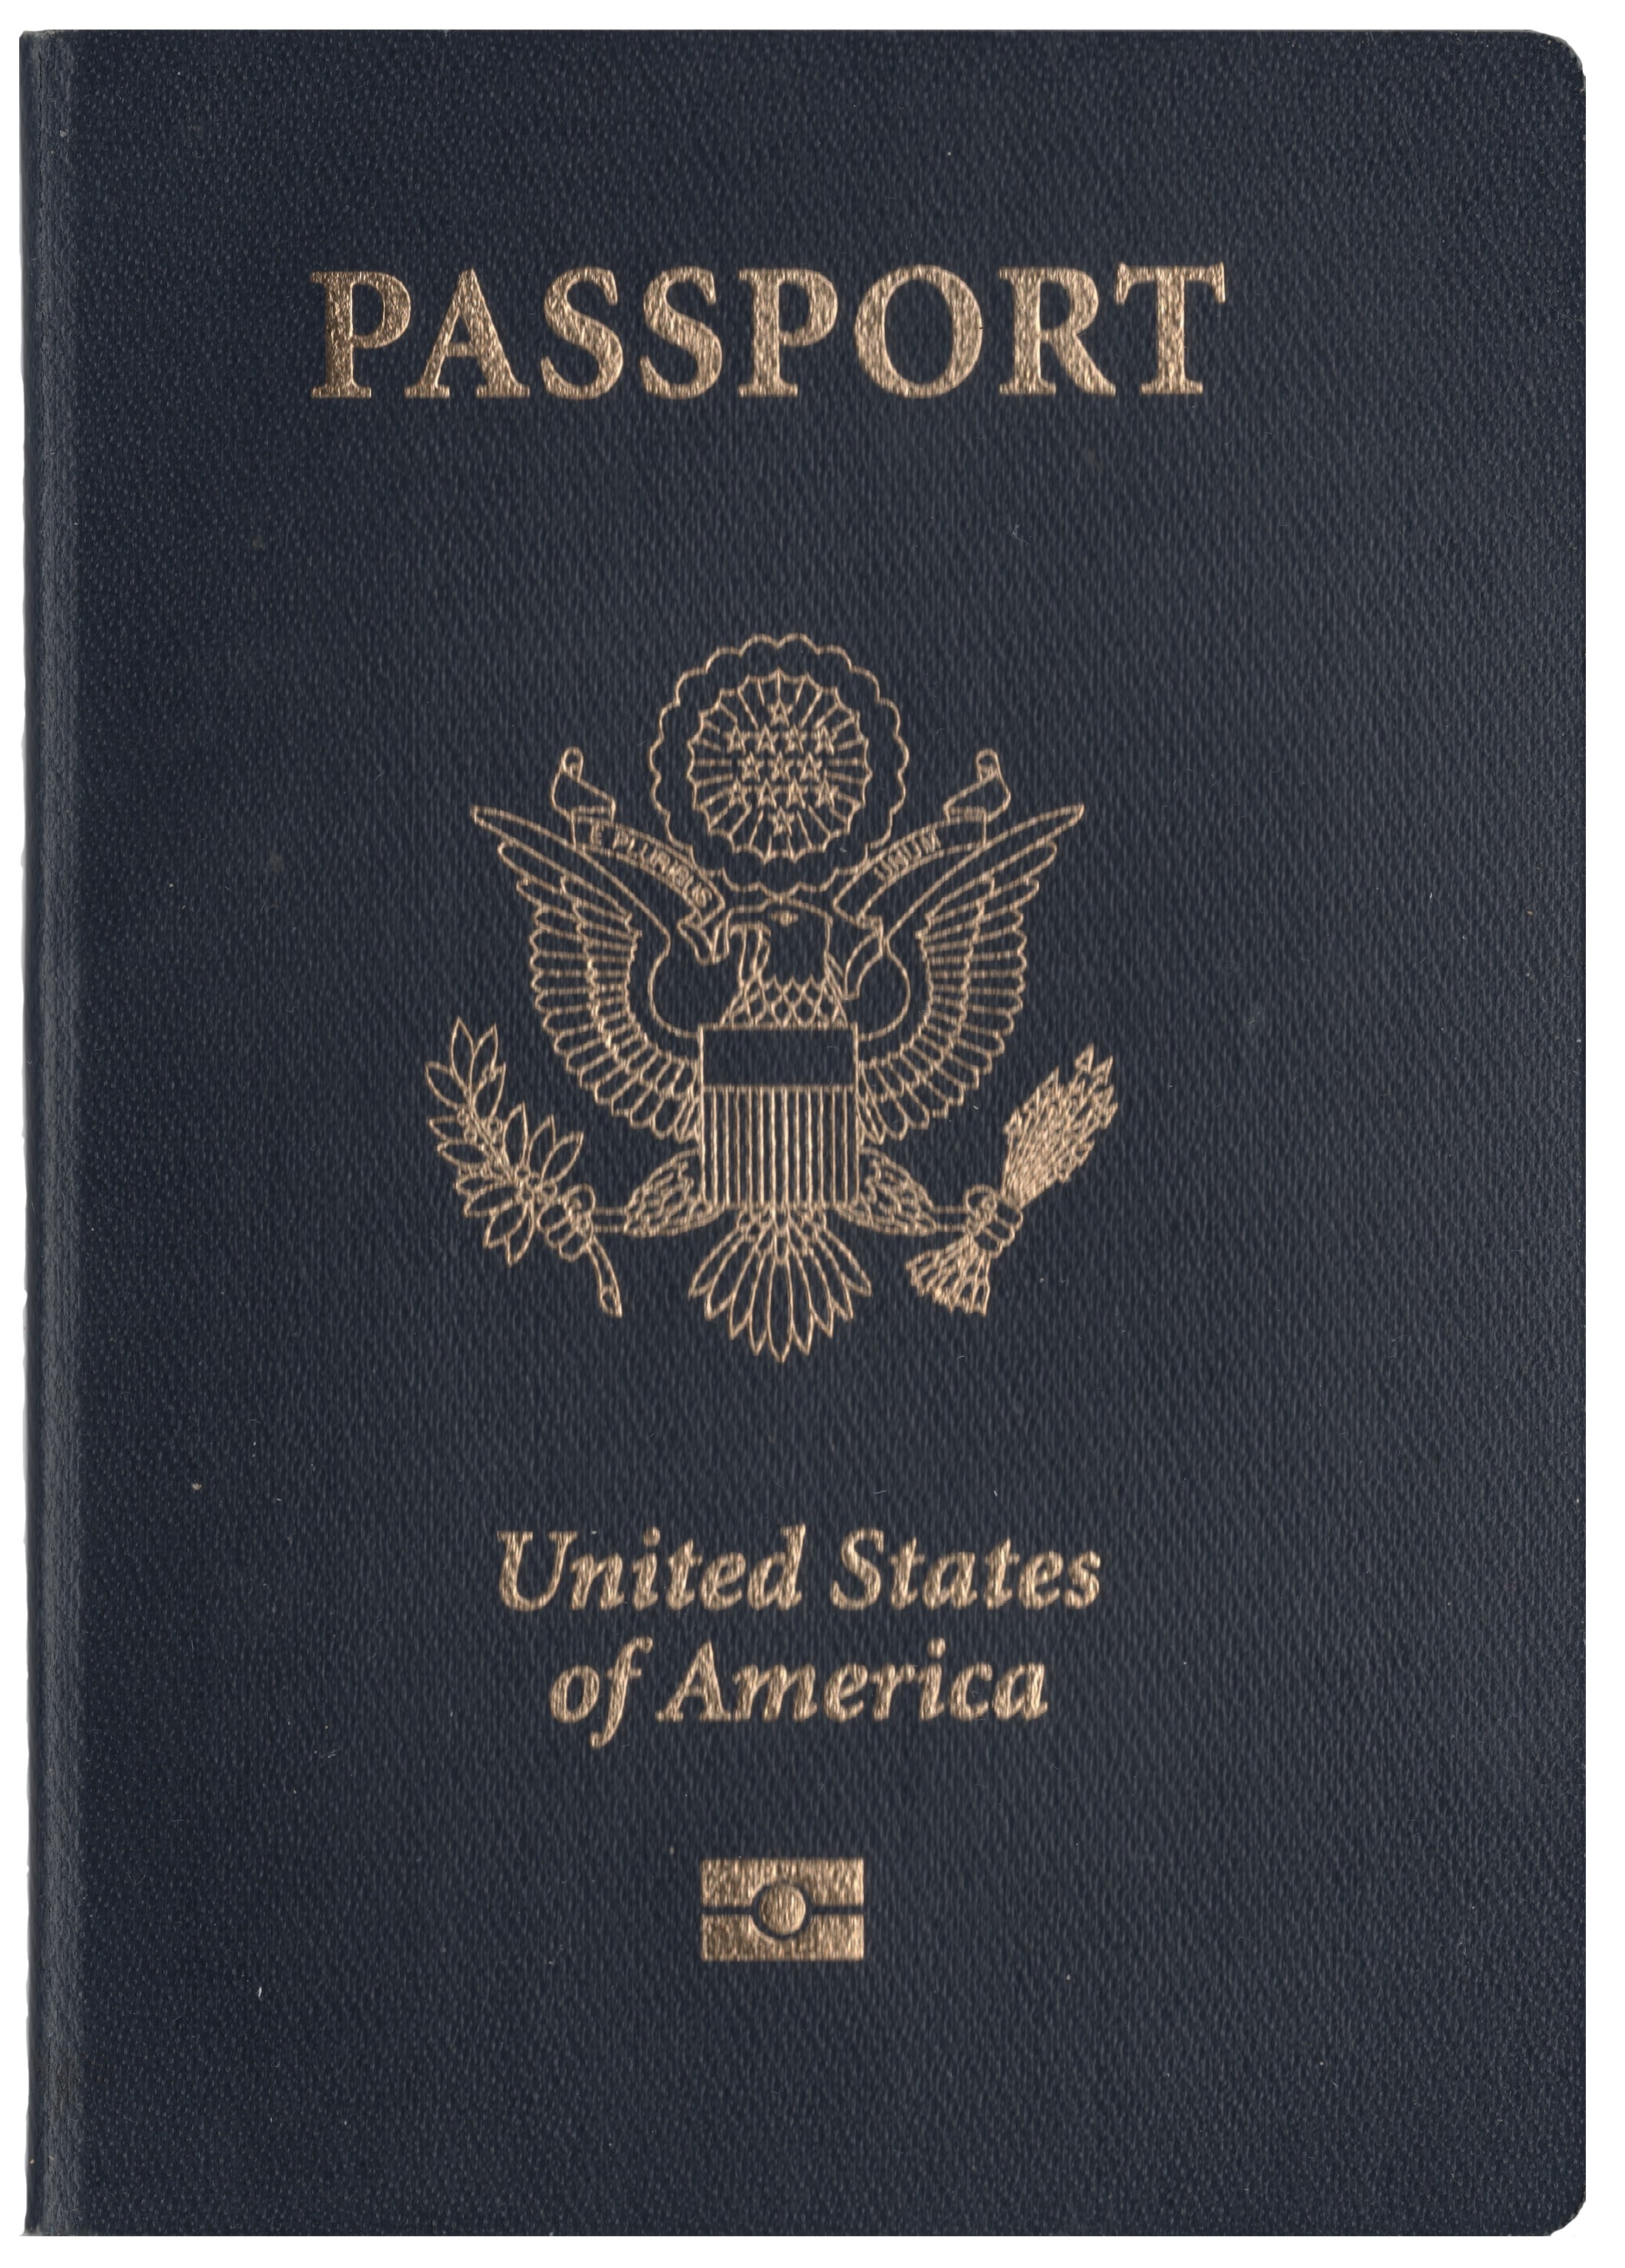 USA lost its position as one of the most powerful passport in the world